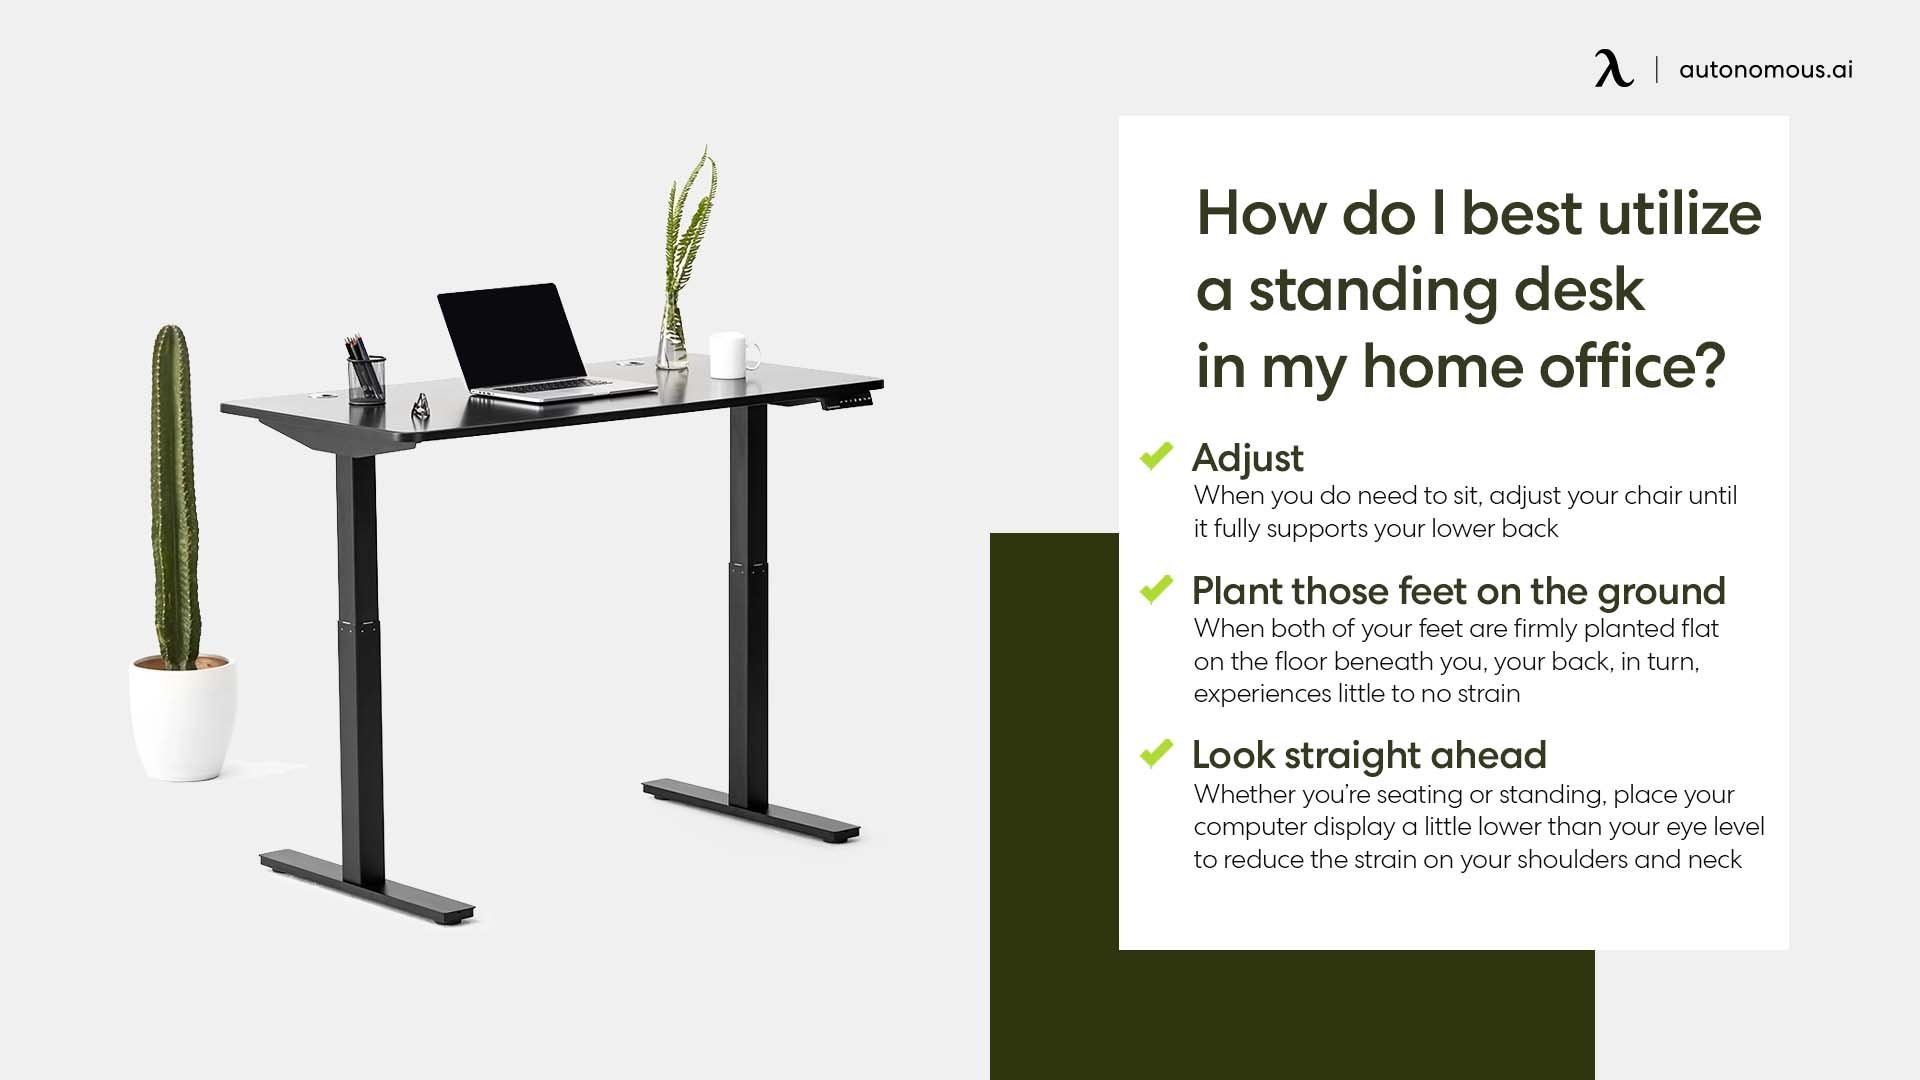 Photo of best utilize a standing desk